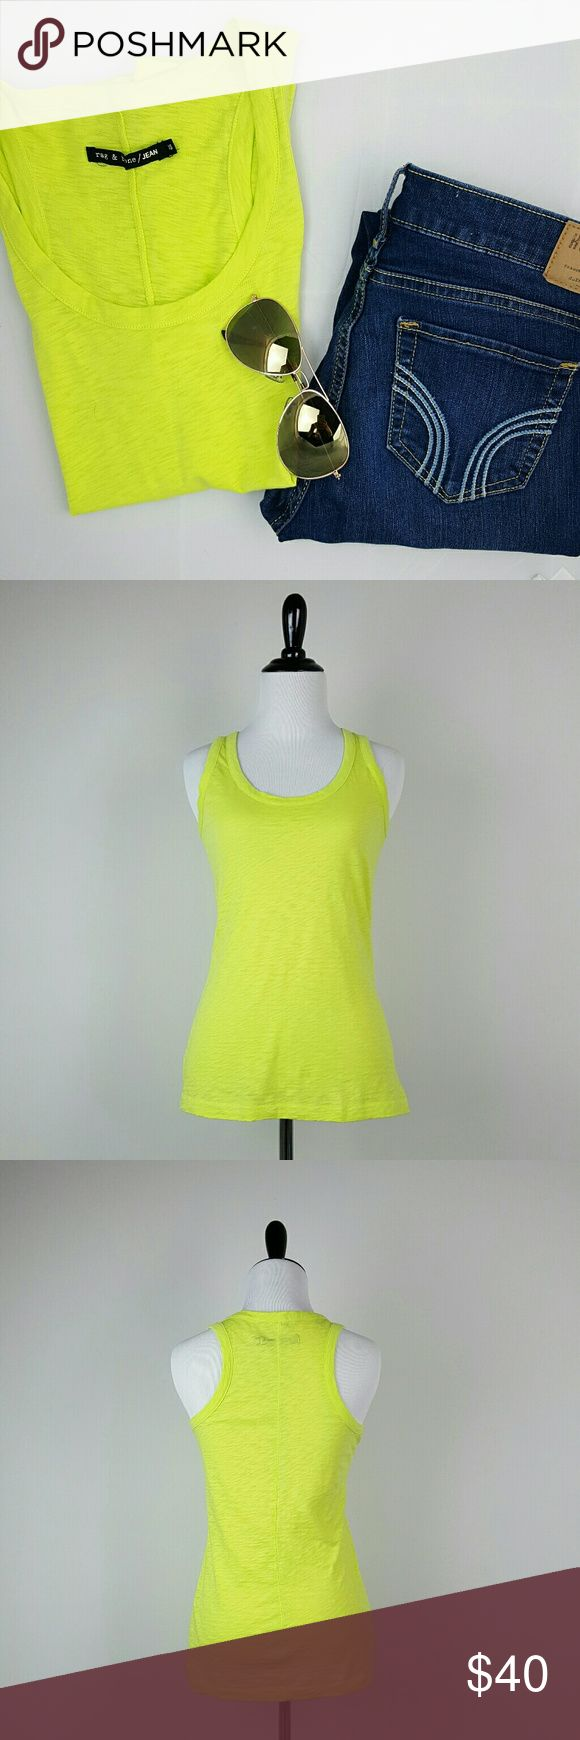 "Rag & Bone / JEAN Tank Top Rag & Bone / JEAN Tank Top. The tank top fabric has a distressed burn out look.  Size: XS 100% Cotton Approximate measurements laying flat: Length- 26"" Underarm to underarm- 13 1/4"" Color is a light neon green/yellow rag & bone Tops Tank Tops"